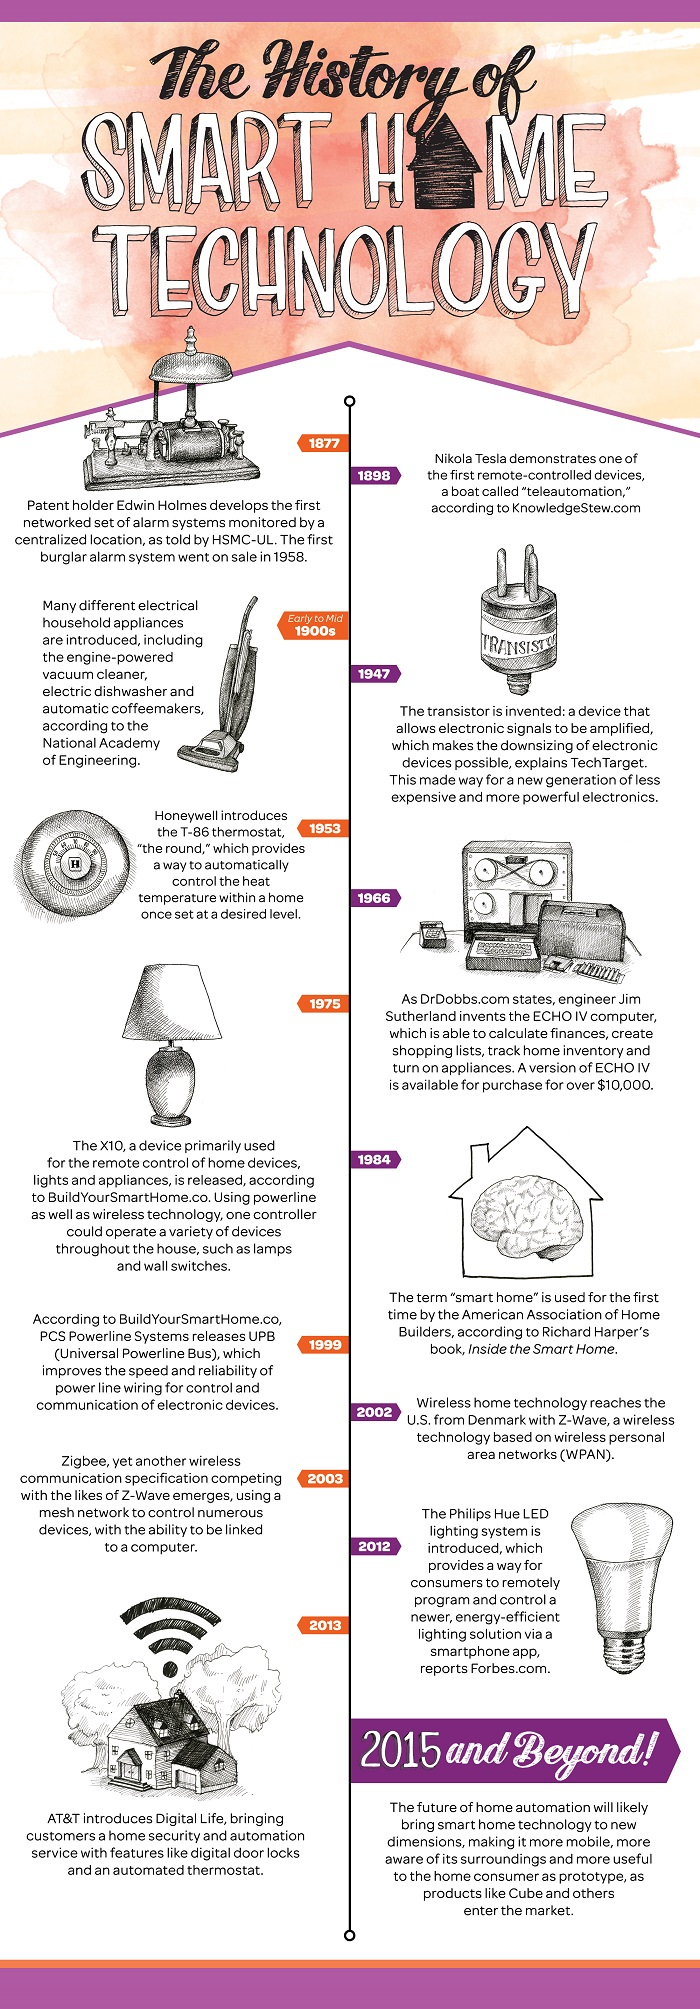 timeline_history-of-home-automation-2